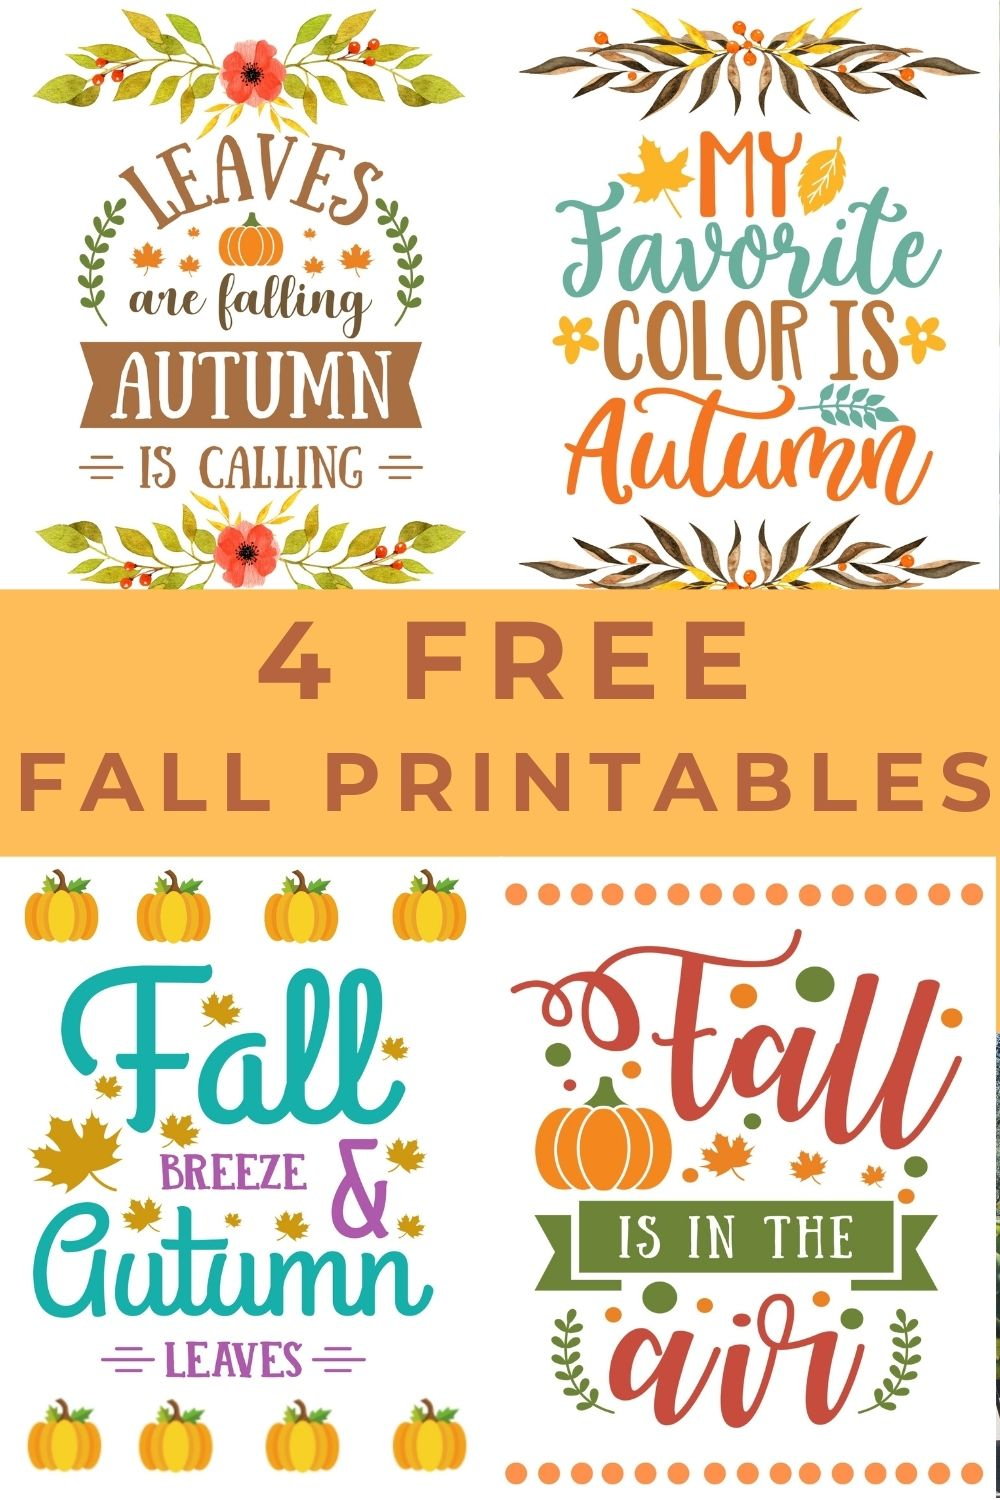 Free Fall Printables - Print these pretty fall printables out and pop them in a frame for instant fall decor. These printables also look great hanging from a clipboard, tacked on a bulletin board, or taped to an office wall. #fallprintable #freefallprintable #freeprintable via @spaula